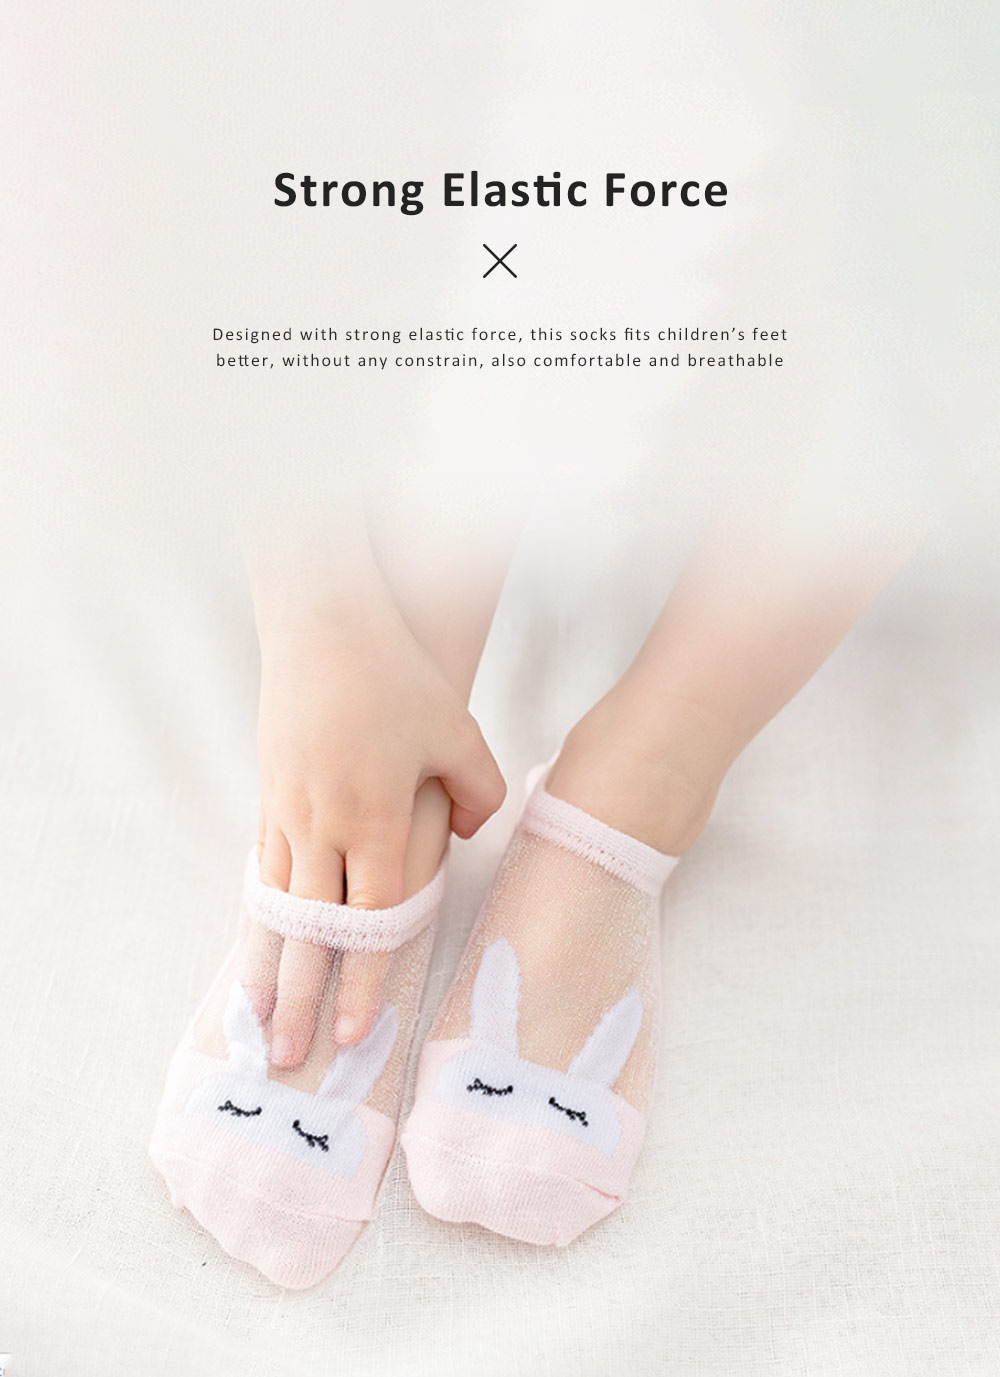 5 Pairs Latest Cotton and Glass Fibre Material Summer Ankle Socks for Children, High Quality Thin Low-cut Socks with Silicone Pad 4